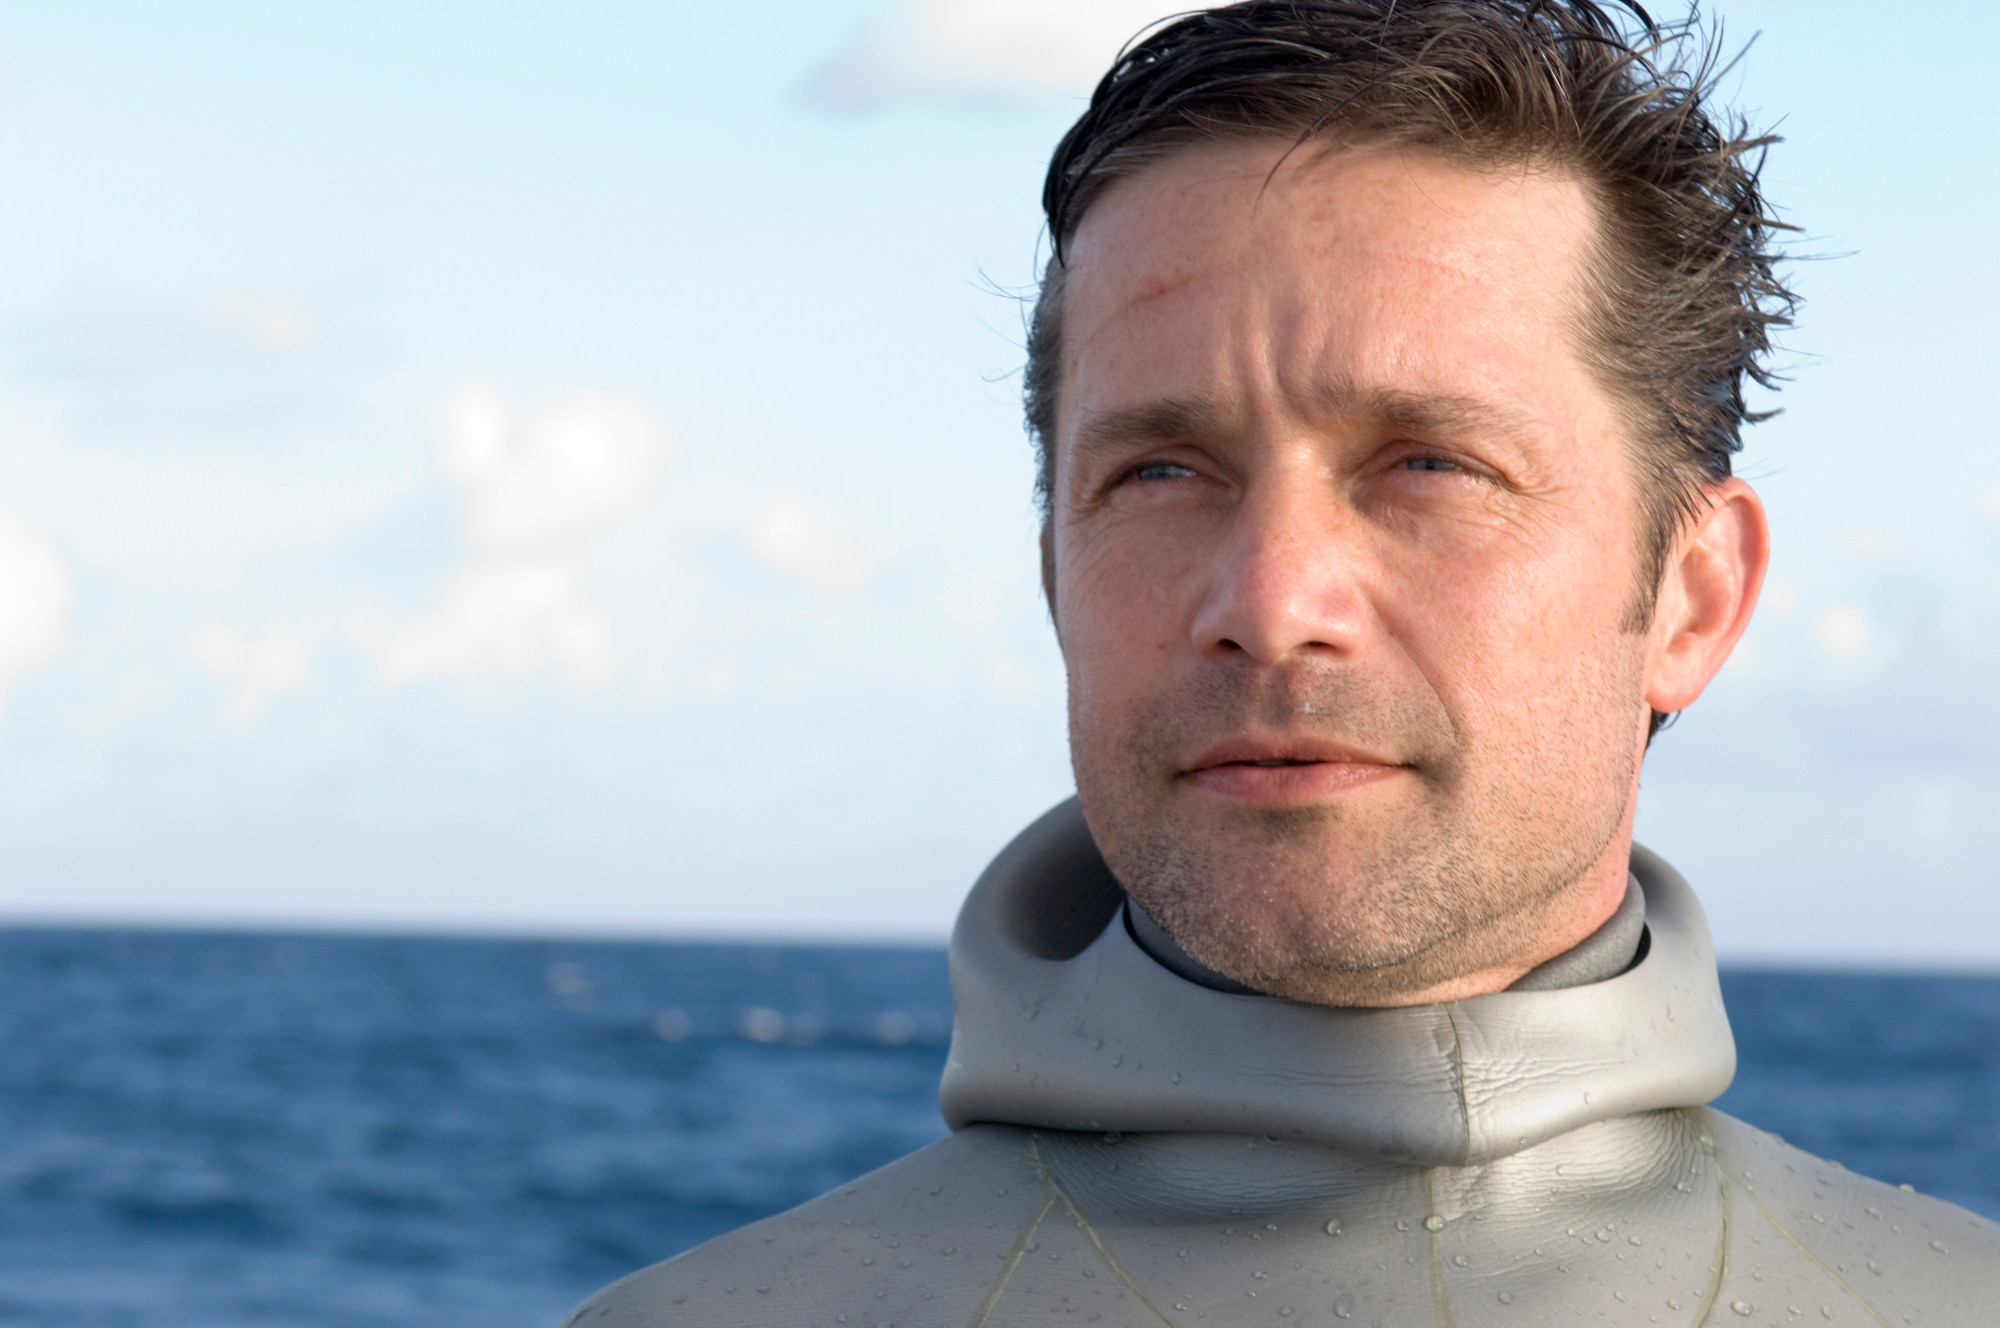 Fabien-Cousteau_photo-credit_Carrie-Vonderhaar-2